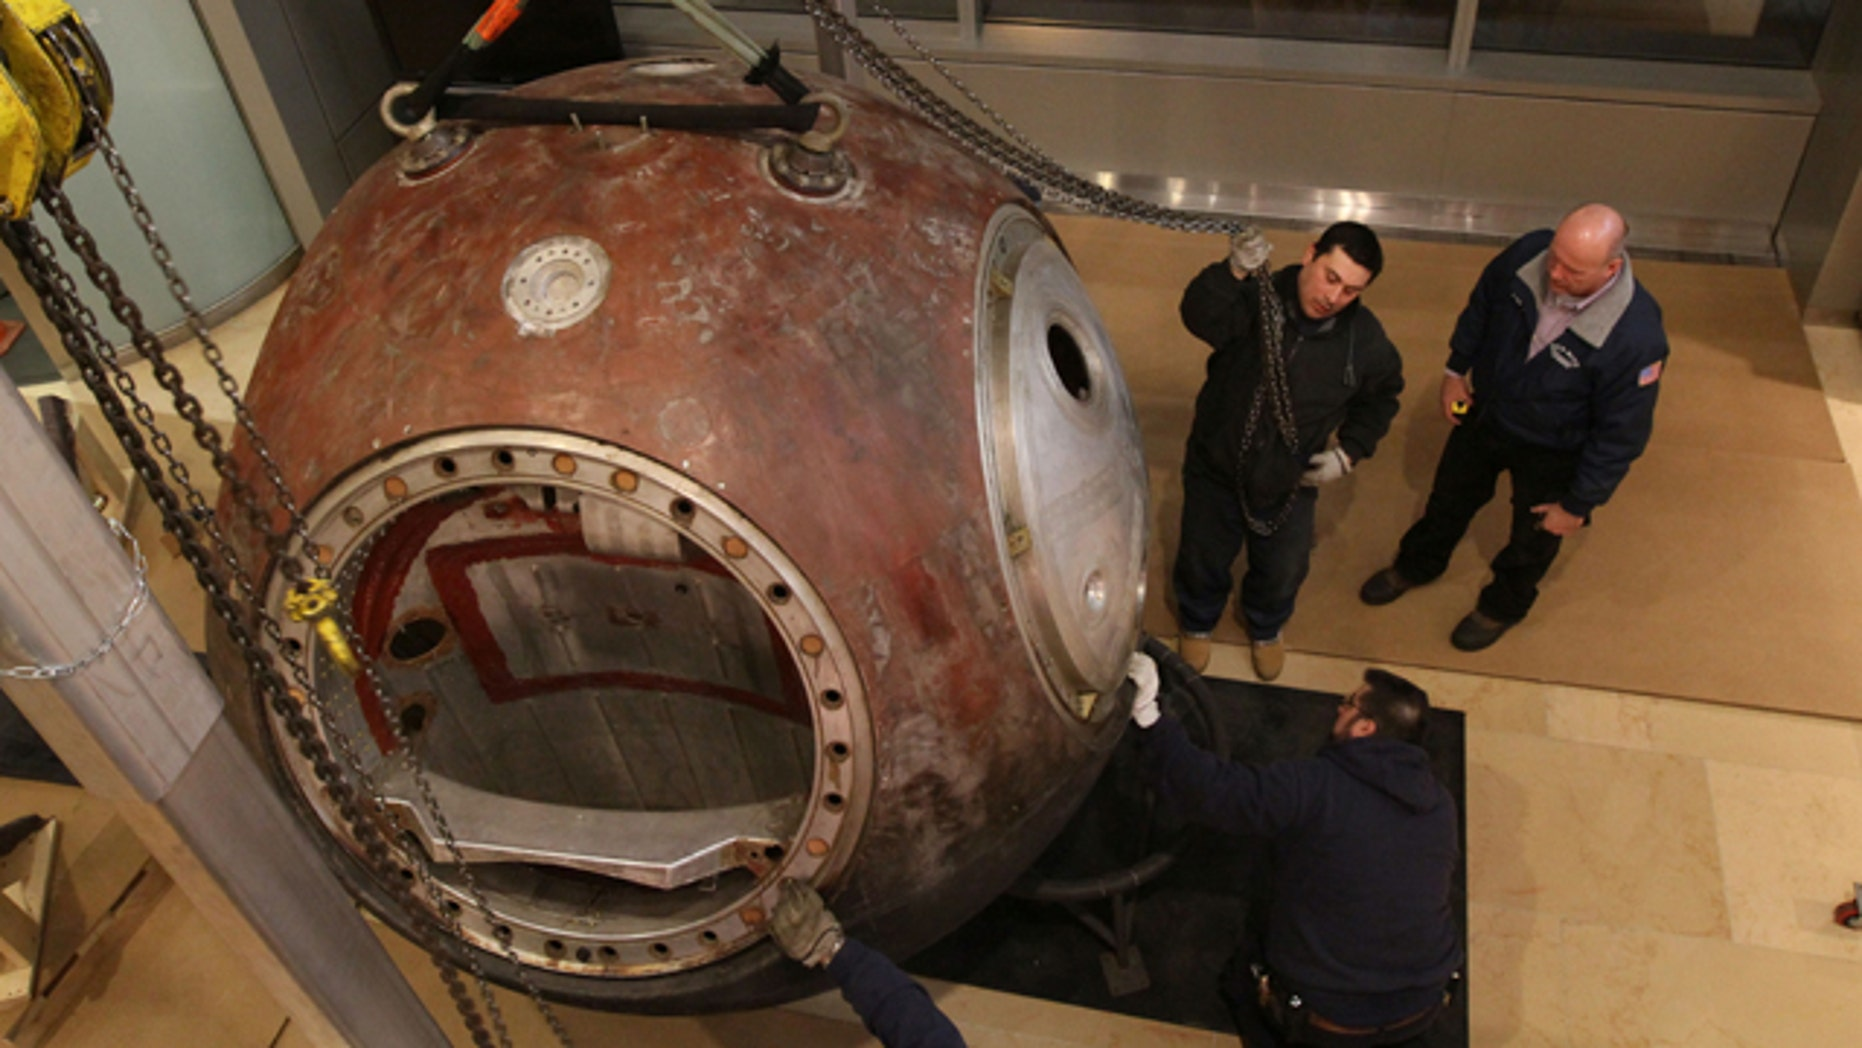 Workers move the Vostok 3KA-2 space capsule into place for display at Sotheby's in New York.